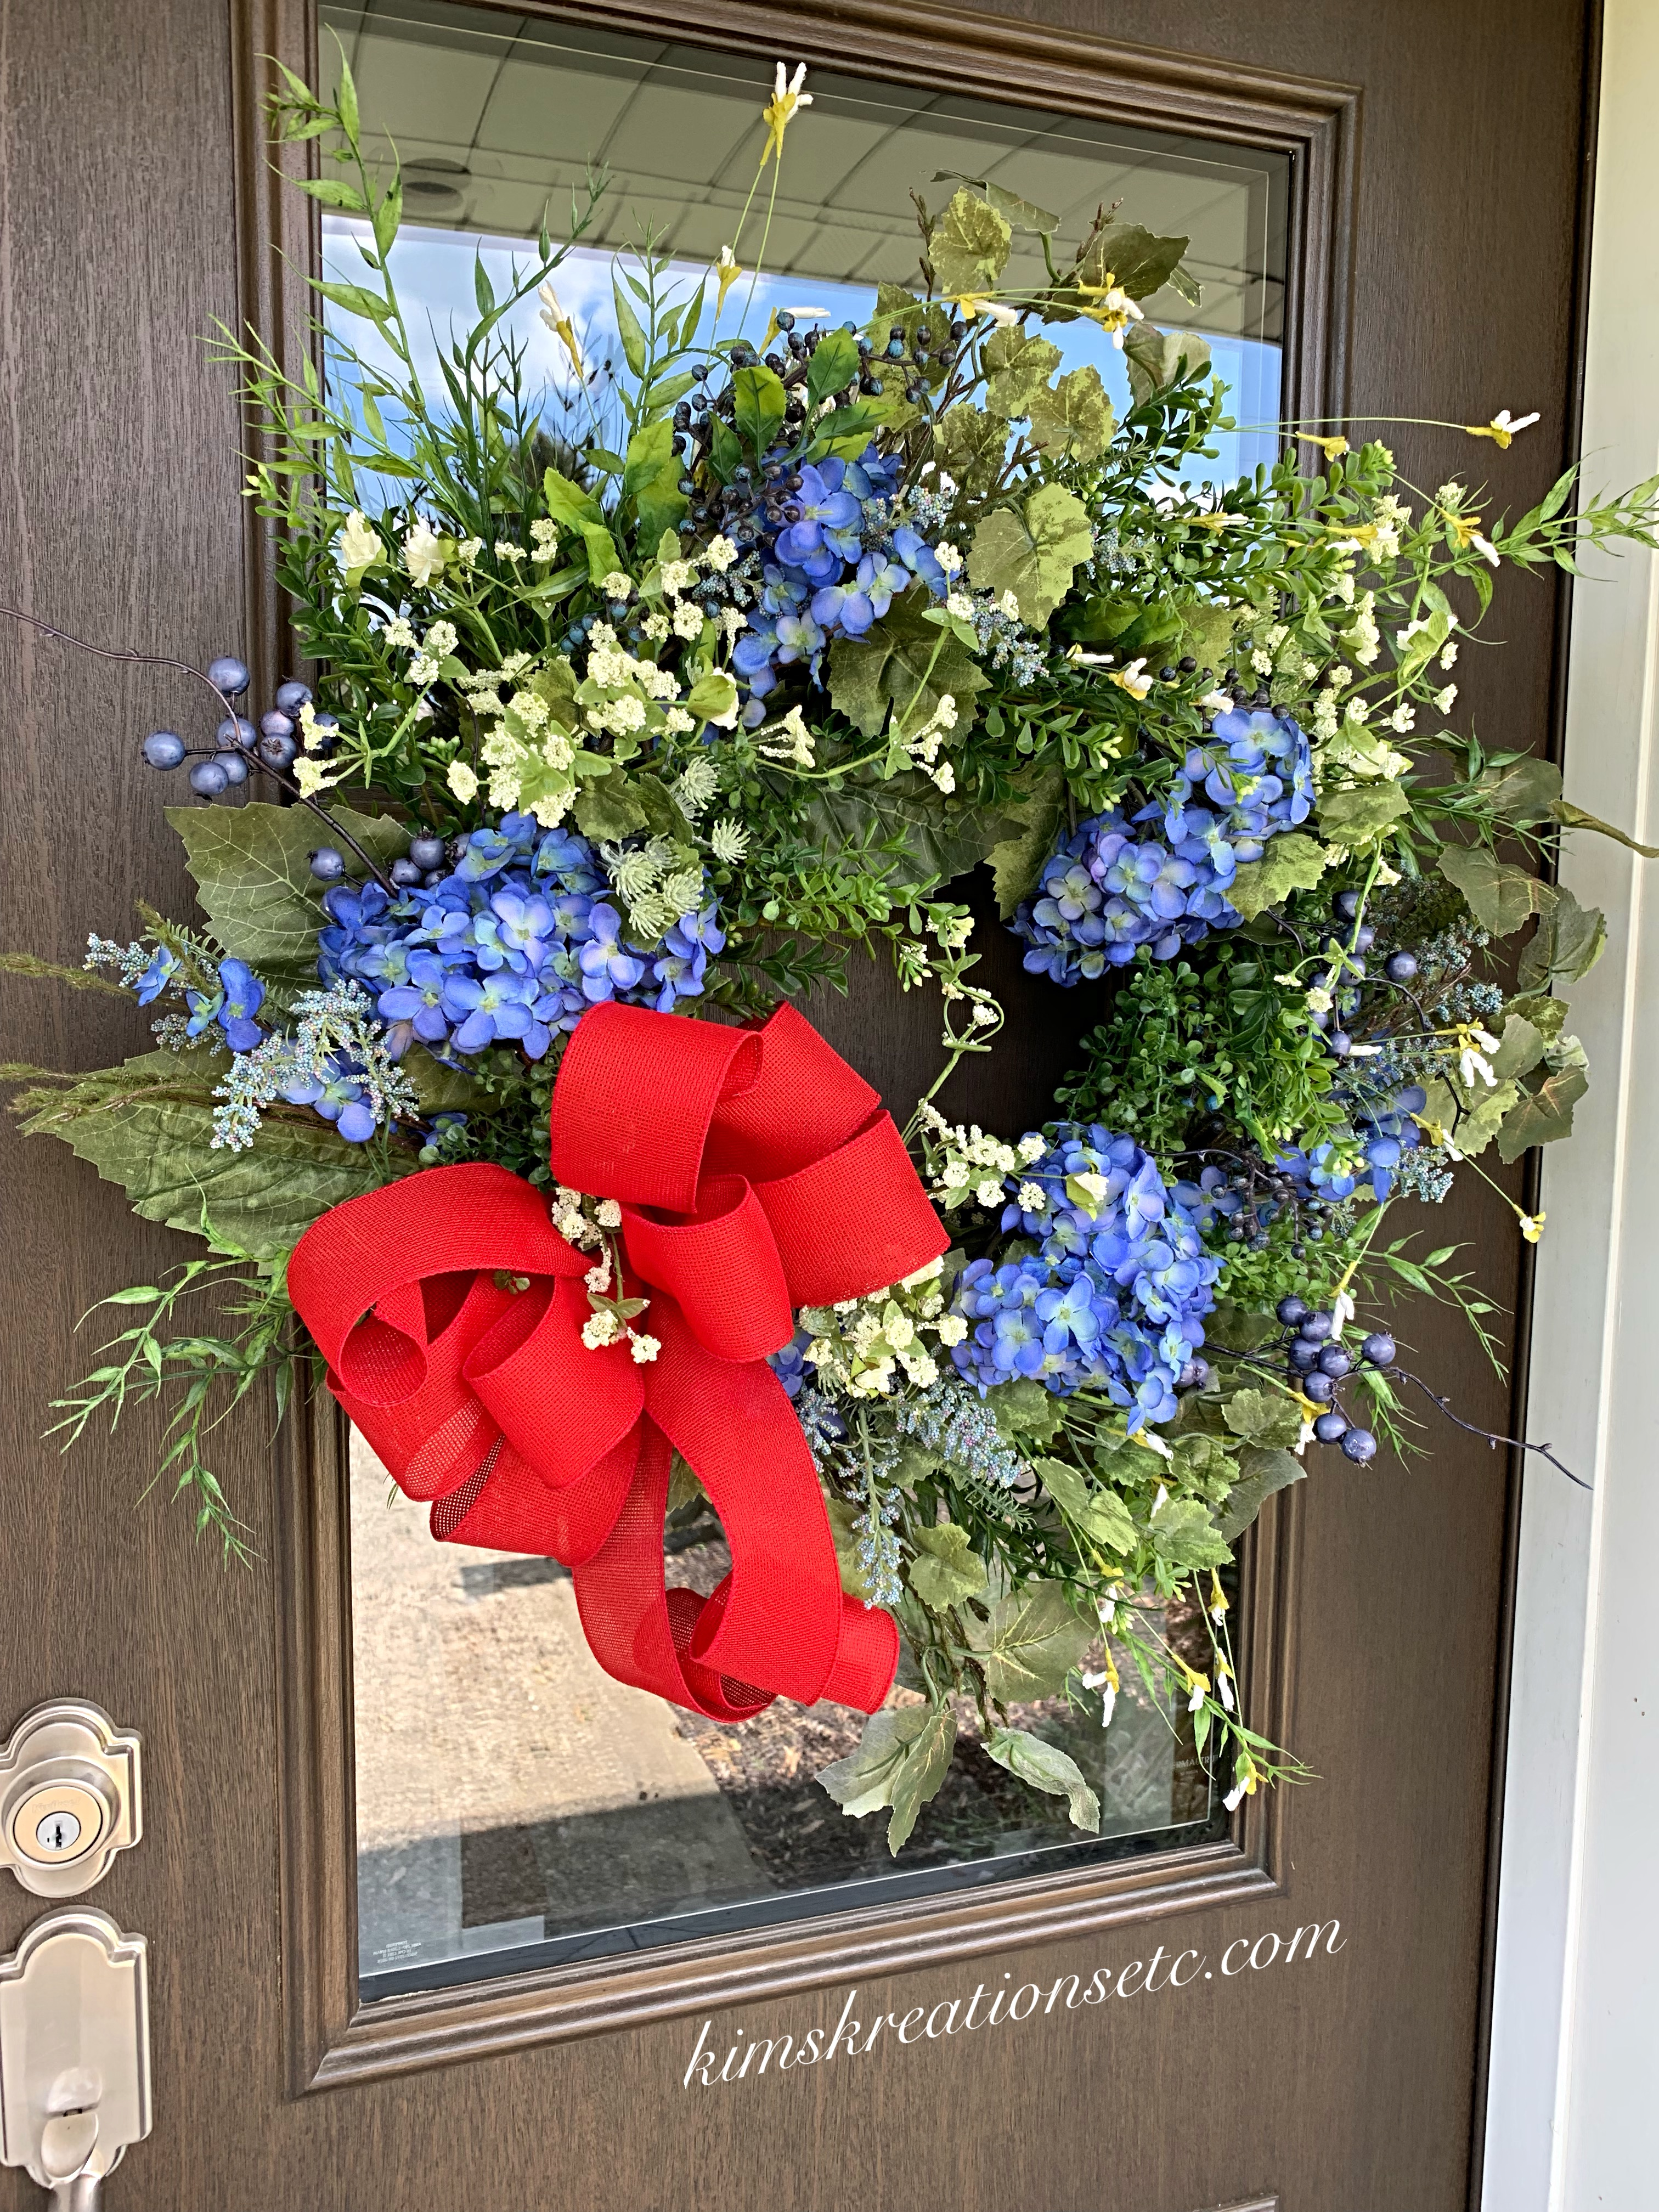 Patriotic Wreath Blue Hydrangeas Red White Blue Wreath Summer Wreath Patriotic Summer Wreath For Front Door 4th Of July Memorial Day All American Wreath Usa Wreath Gorgeous Summer Patriotic Wreath Home Decor